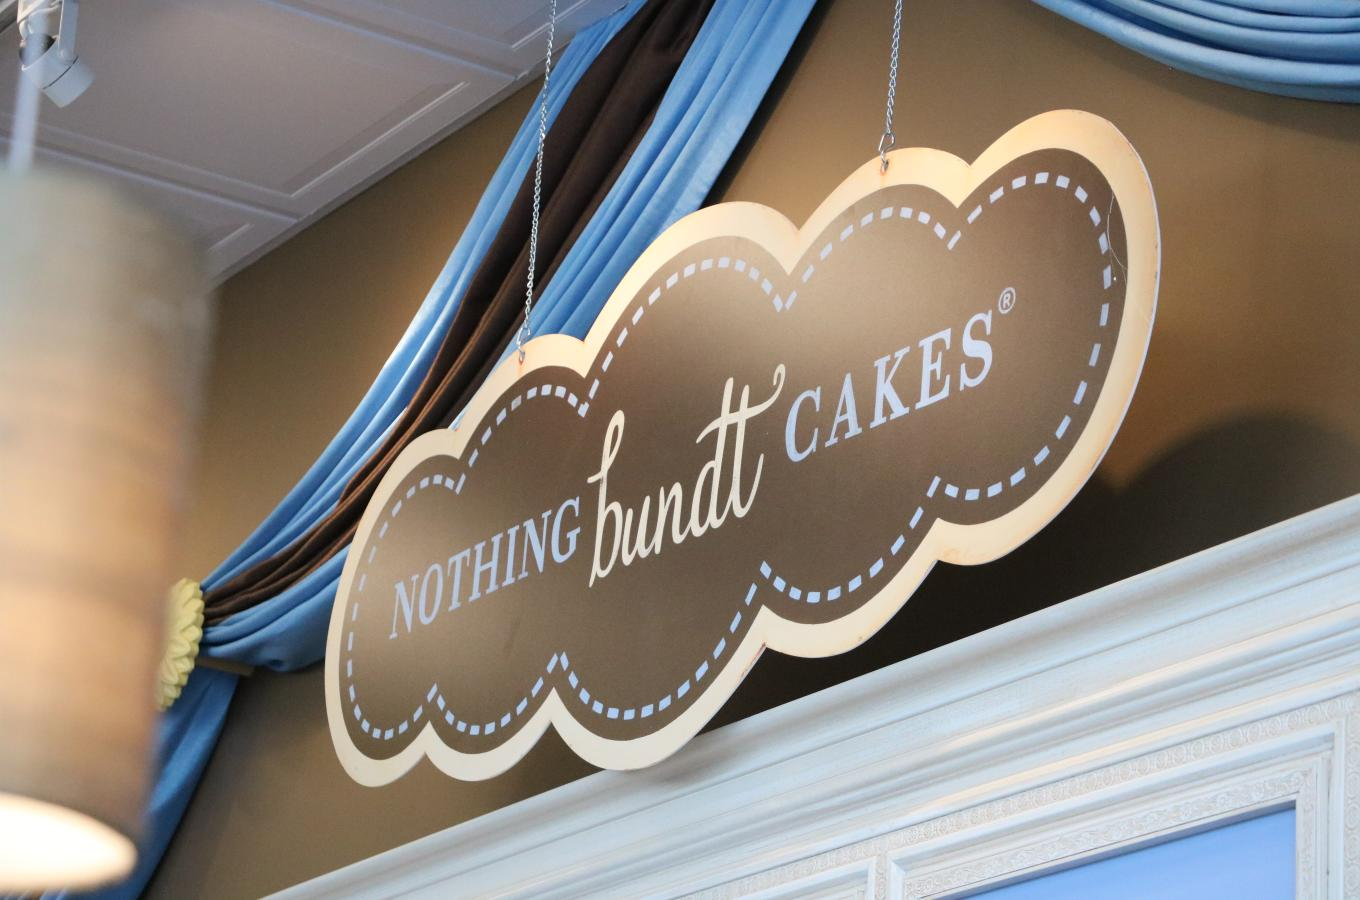 Nothing Bundt Cakes Inside Sign